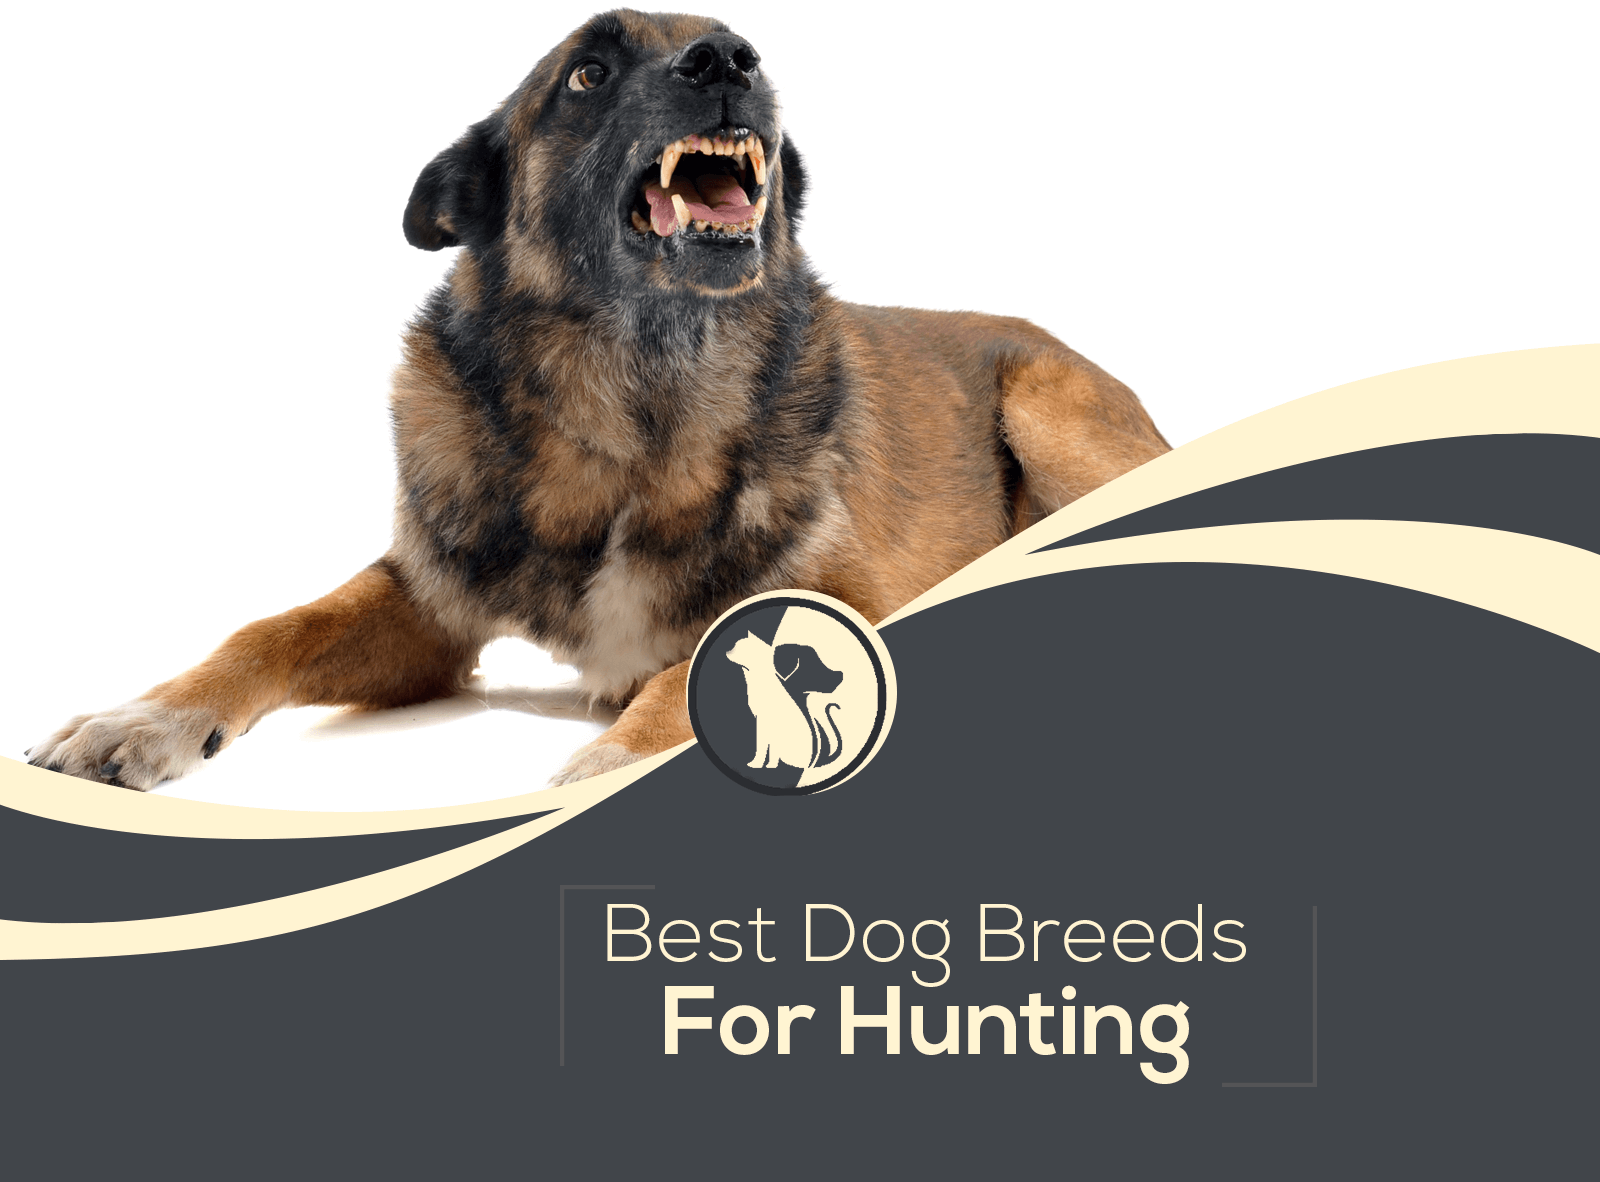 Top 10 Best Dog Breeds for Hunting